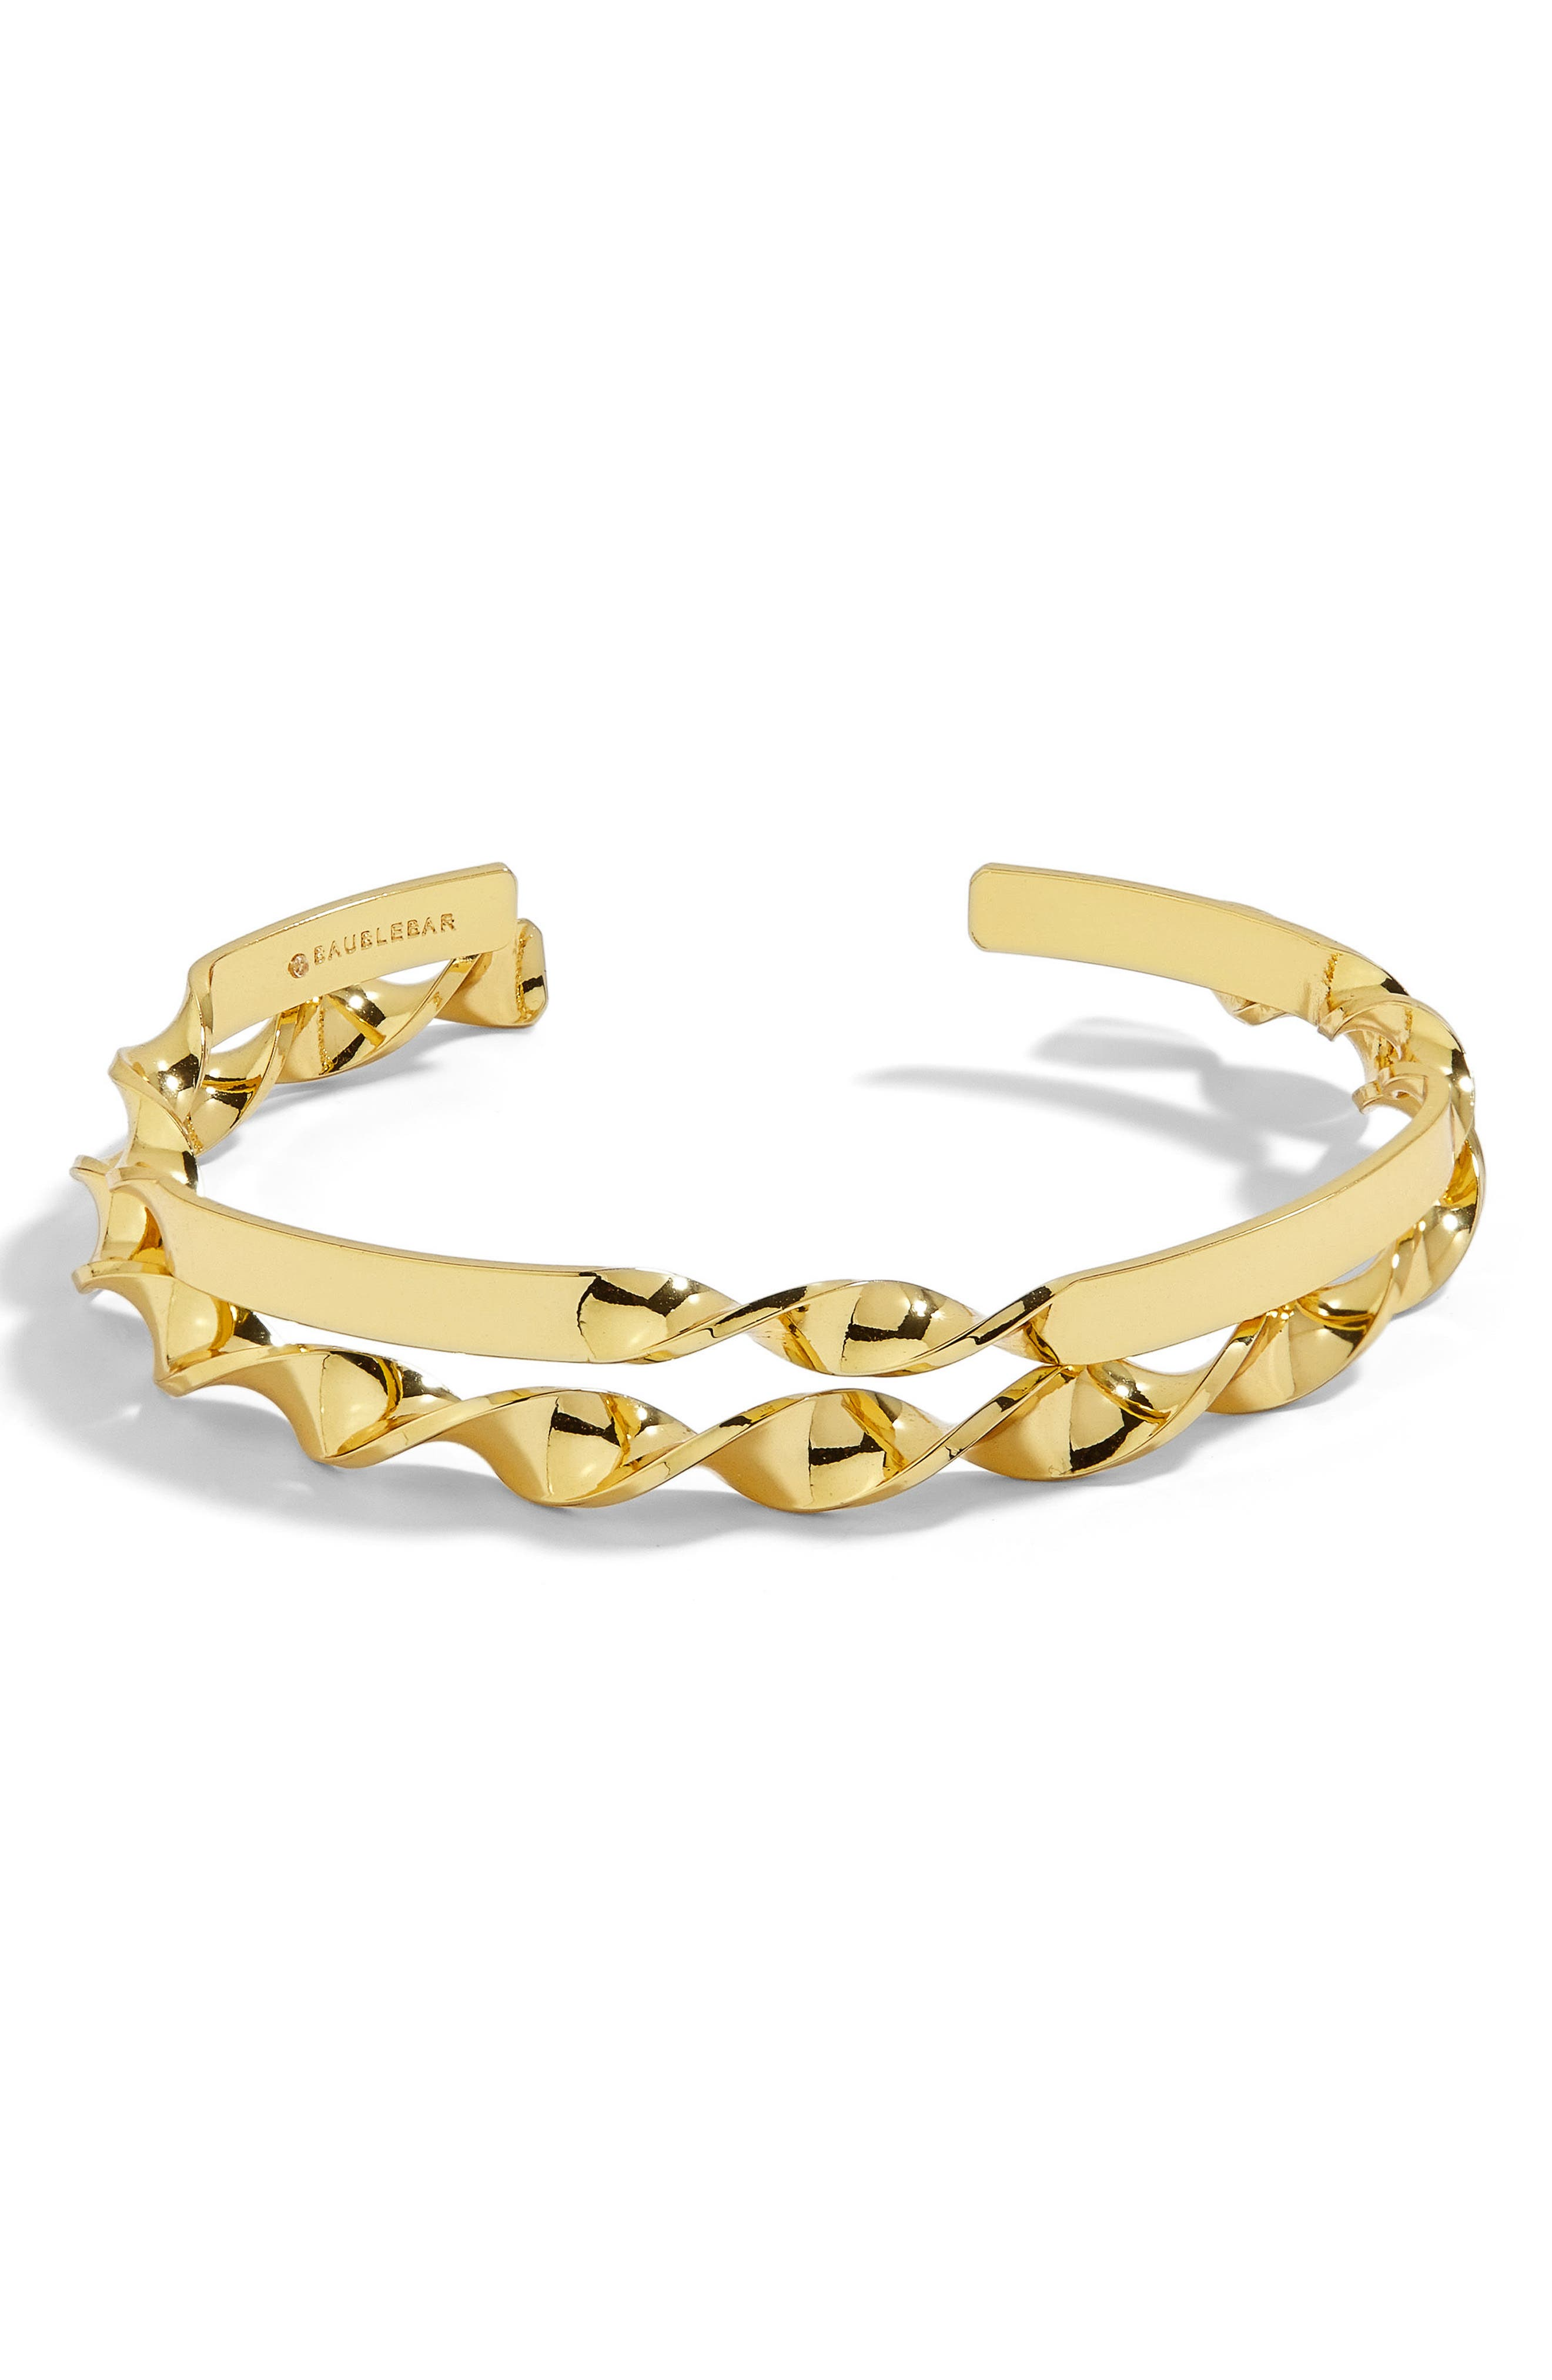 Narine Set of 2 Twisted Gold Cuff Bracelets,                         Main,                         color, Gold